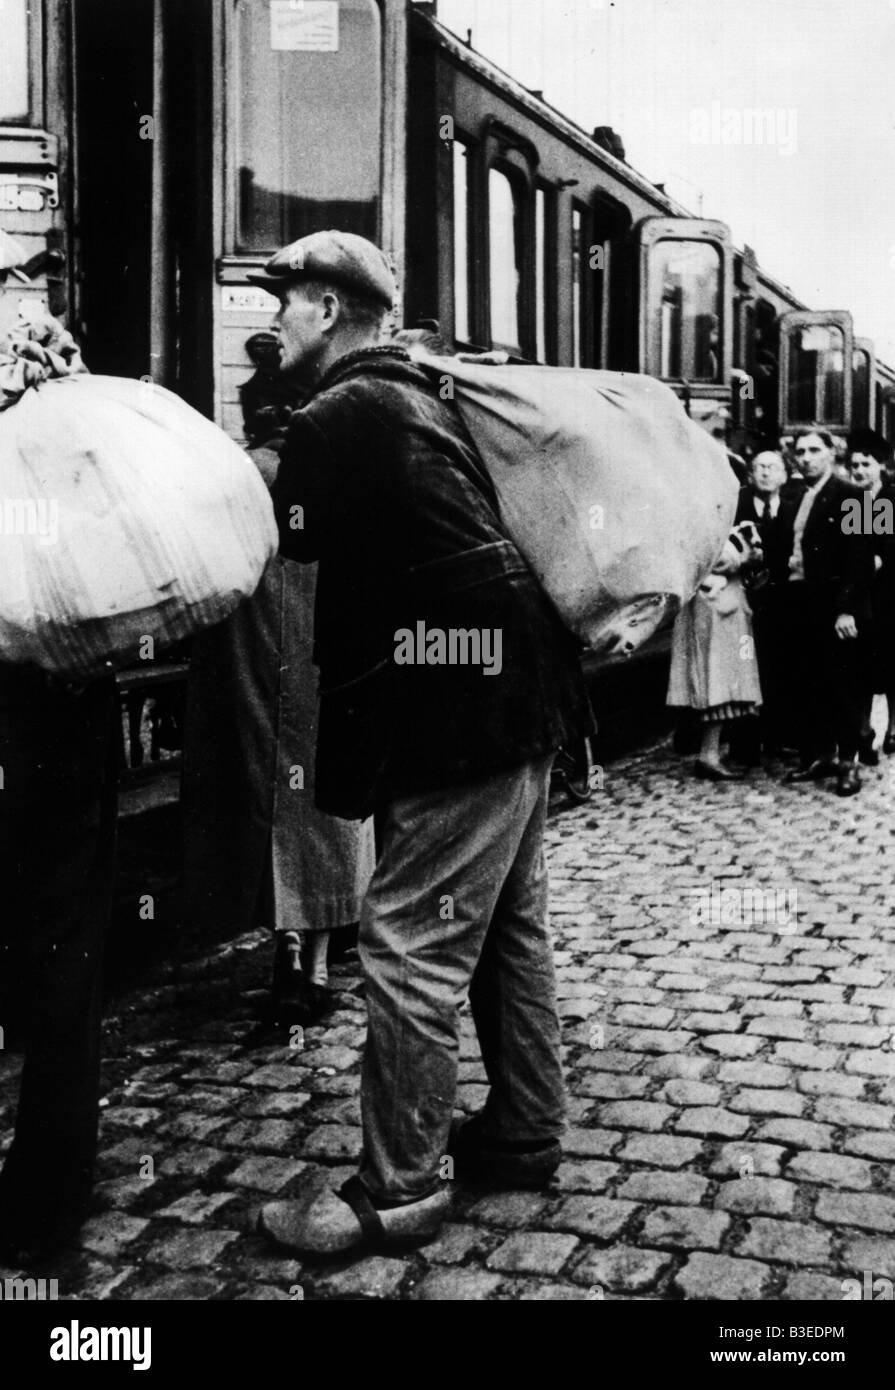 Belgian Workers to Germany /Photo/ 1940 - Stock Image